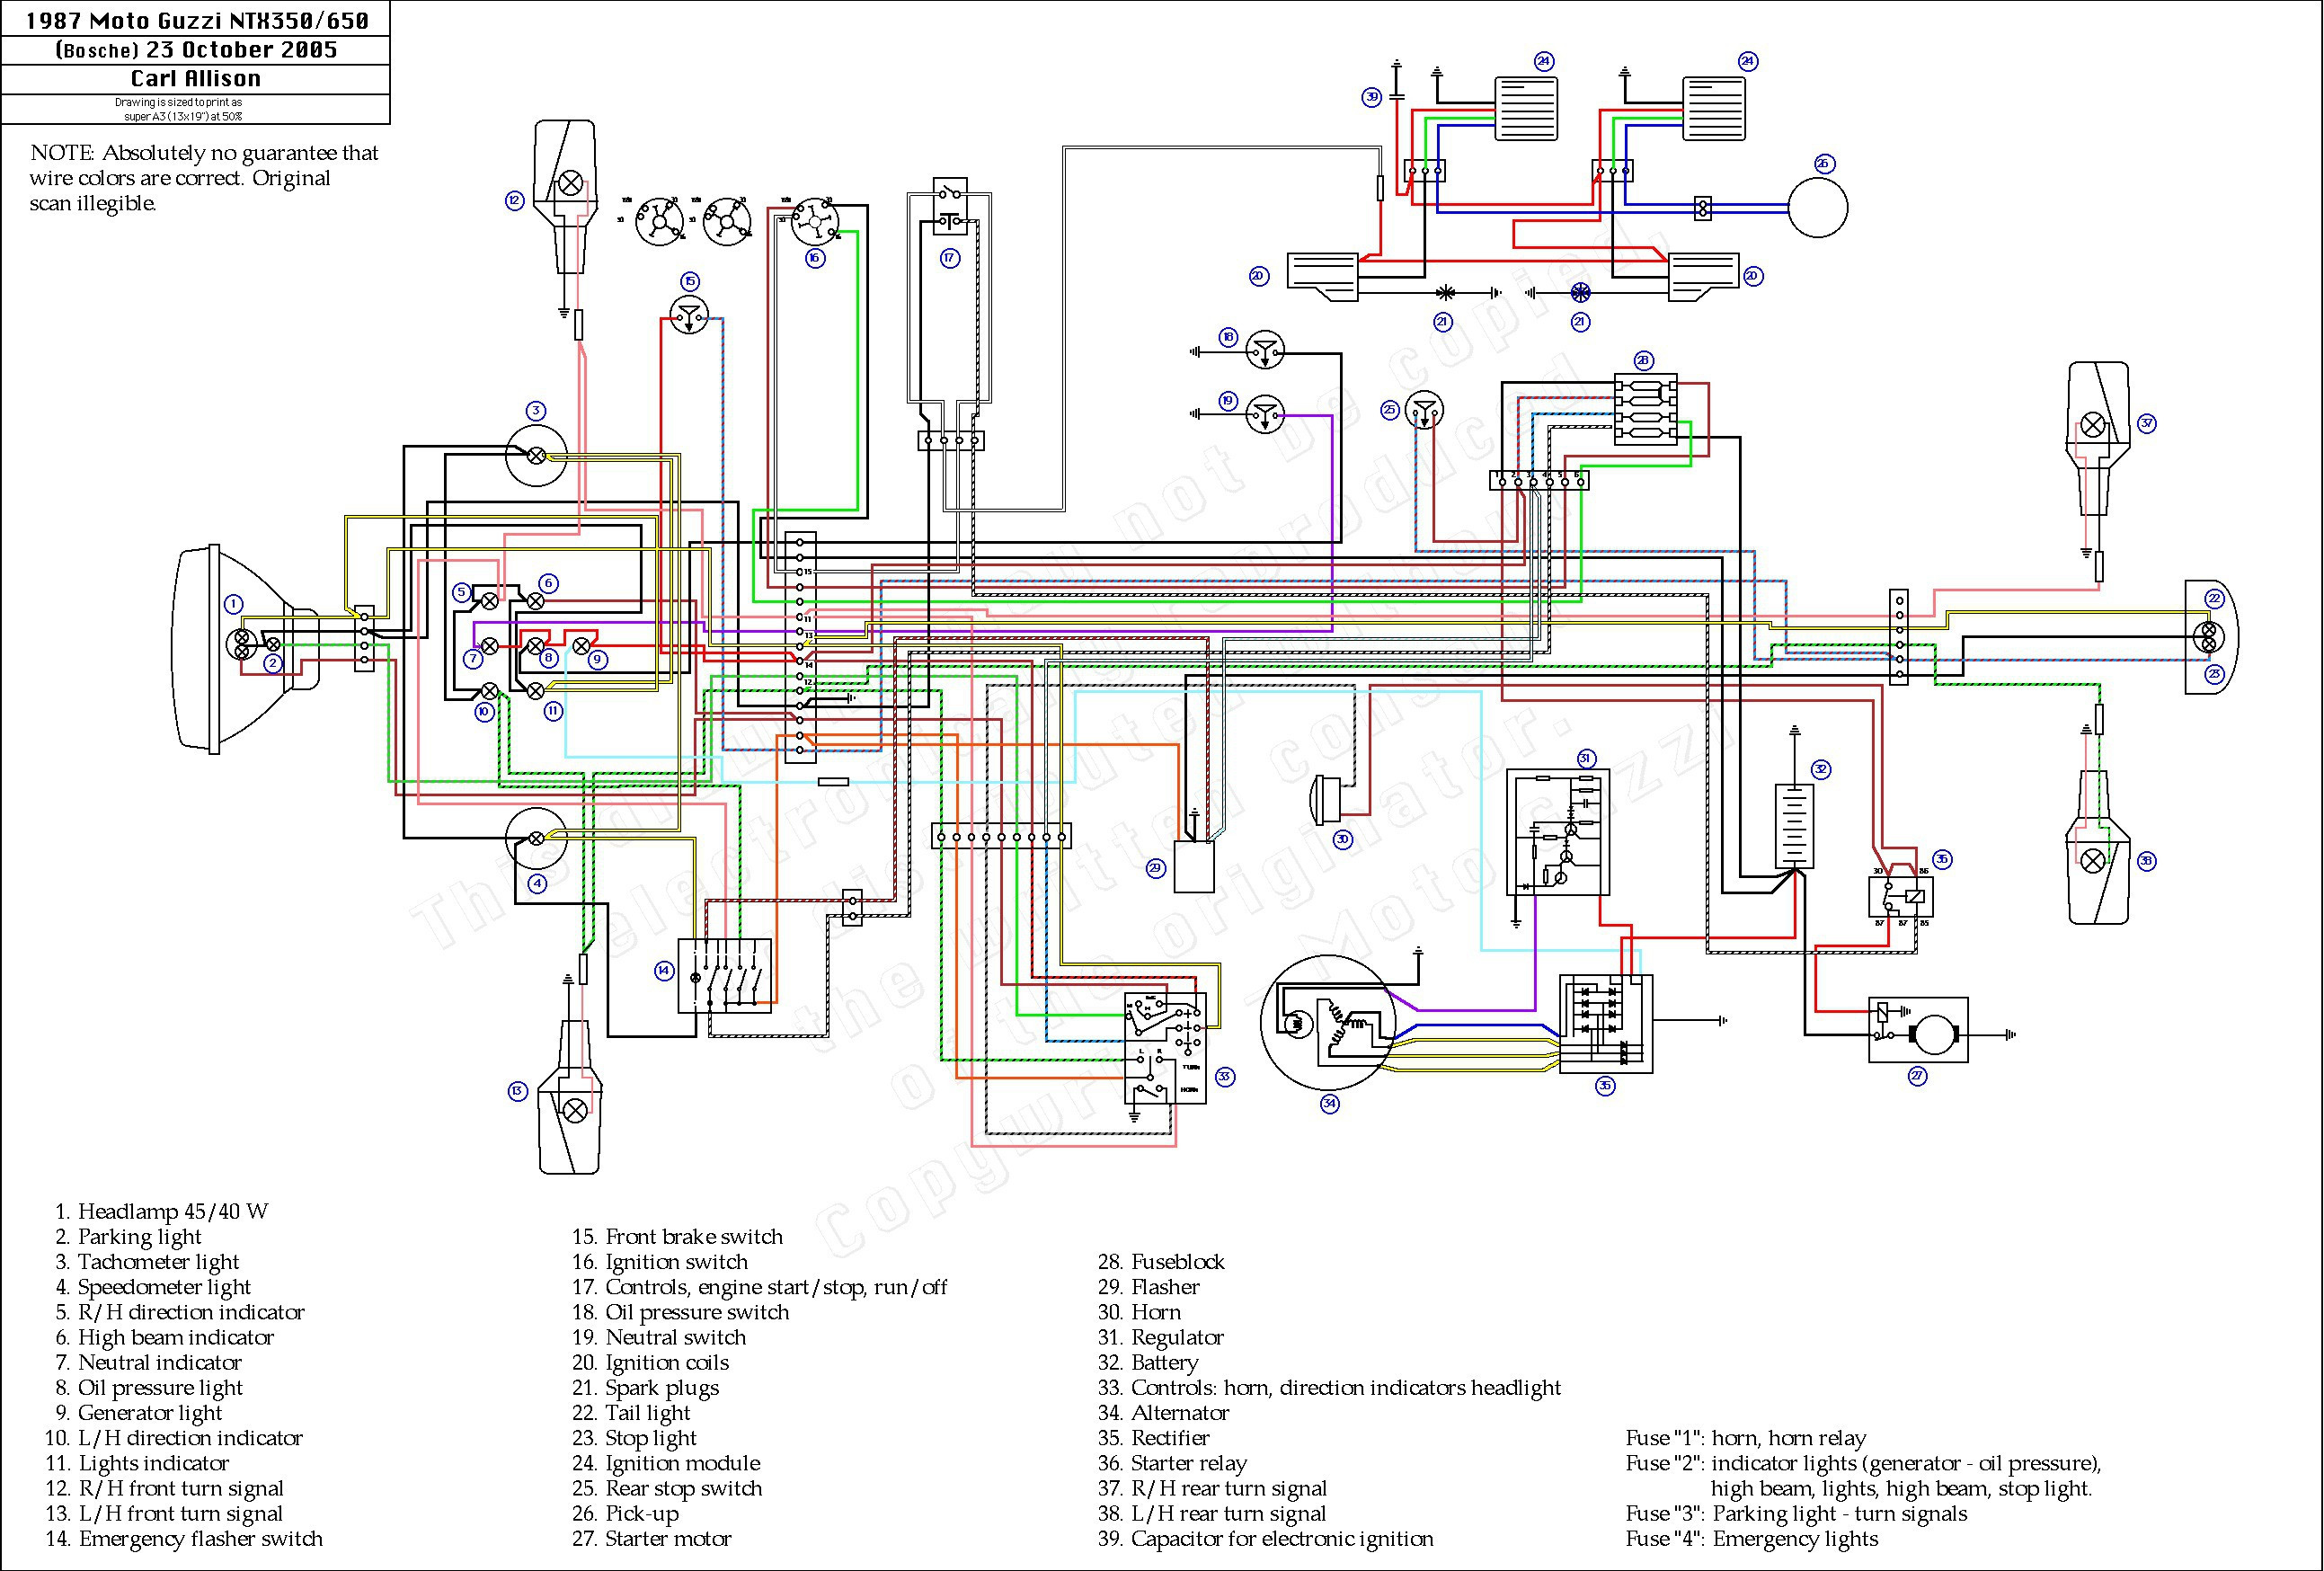 Chinese Atv Wiring Diagram 50Cc from 2020cadillac.com